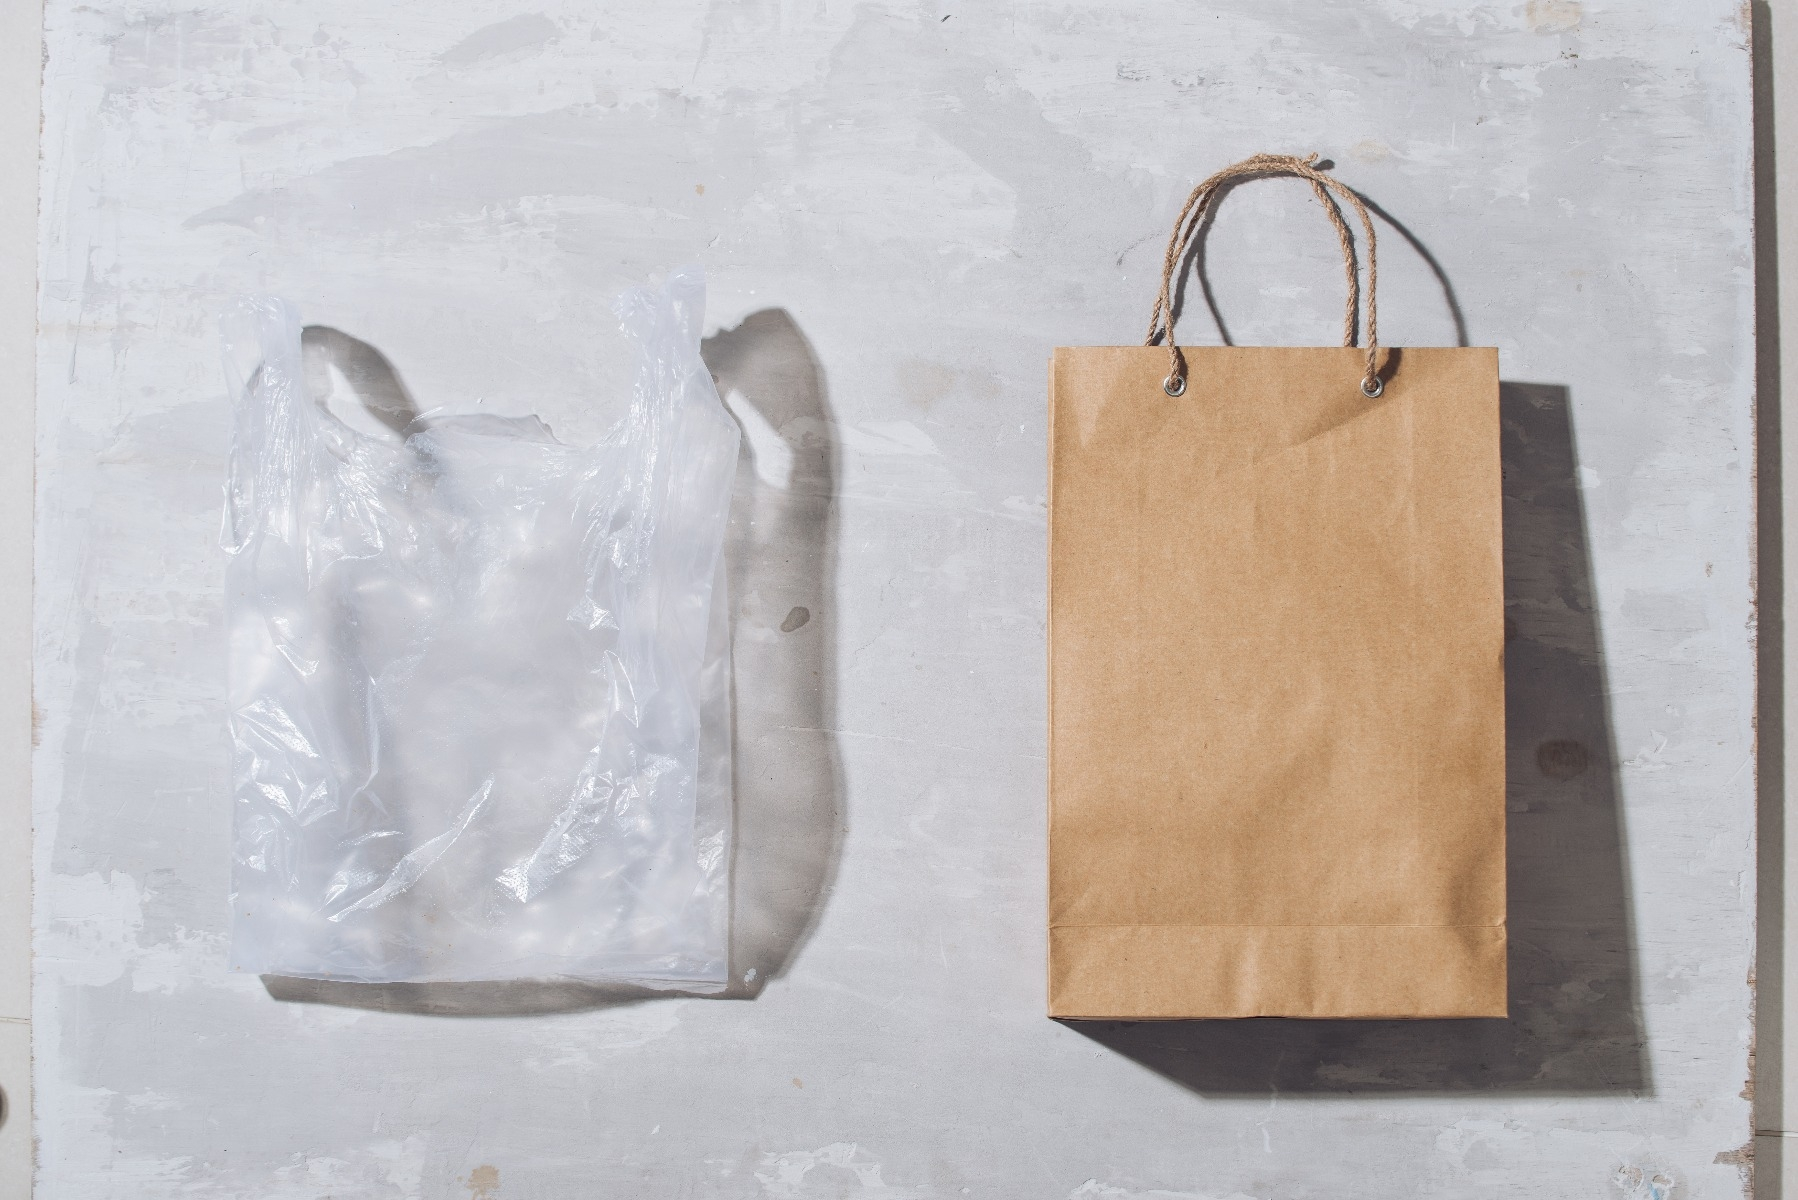 clear plastic bag and brown paper bag side by side on grey background